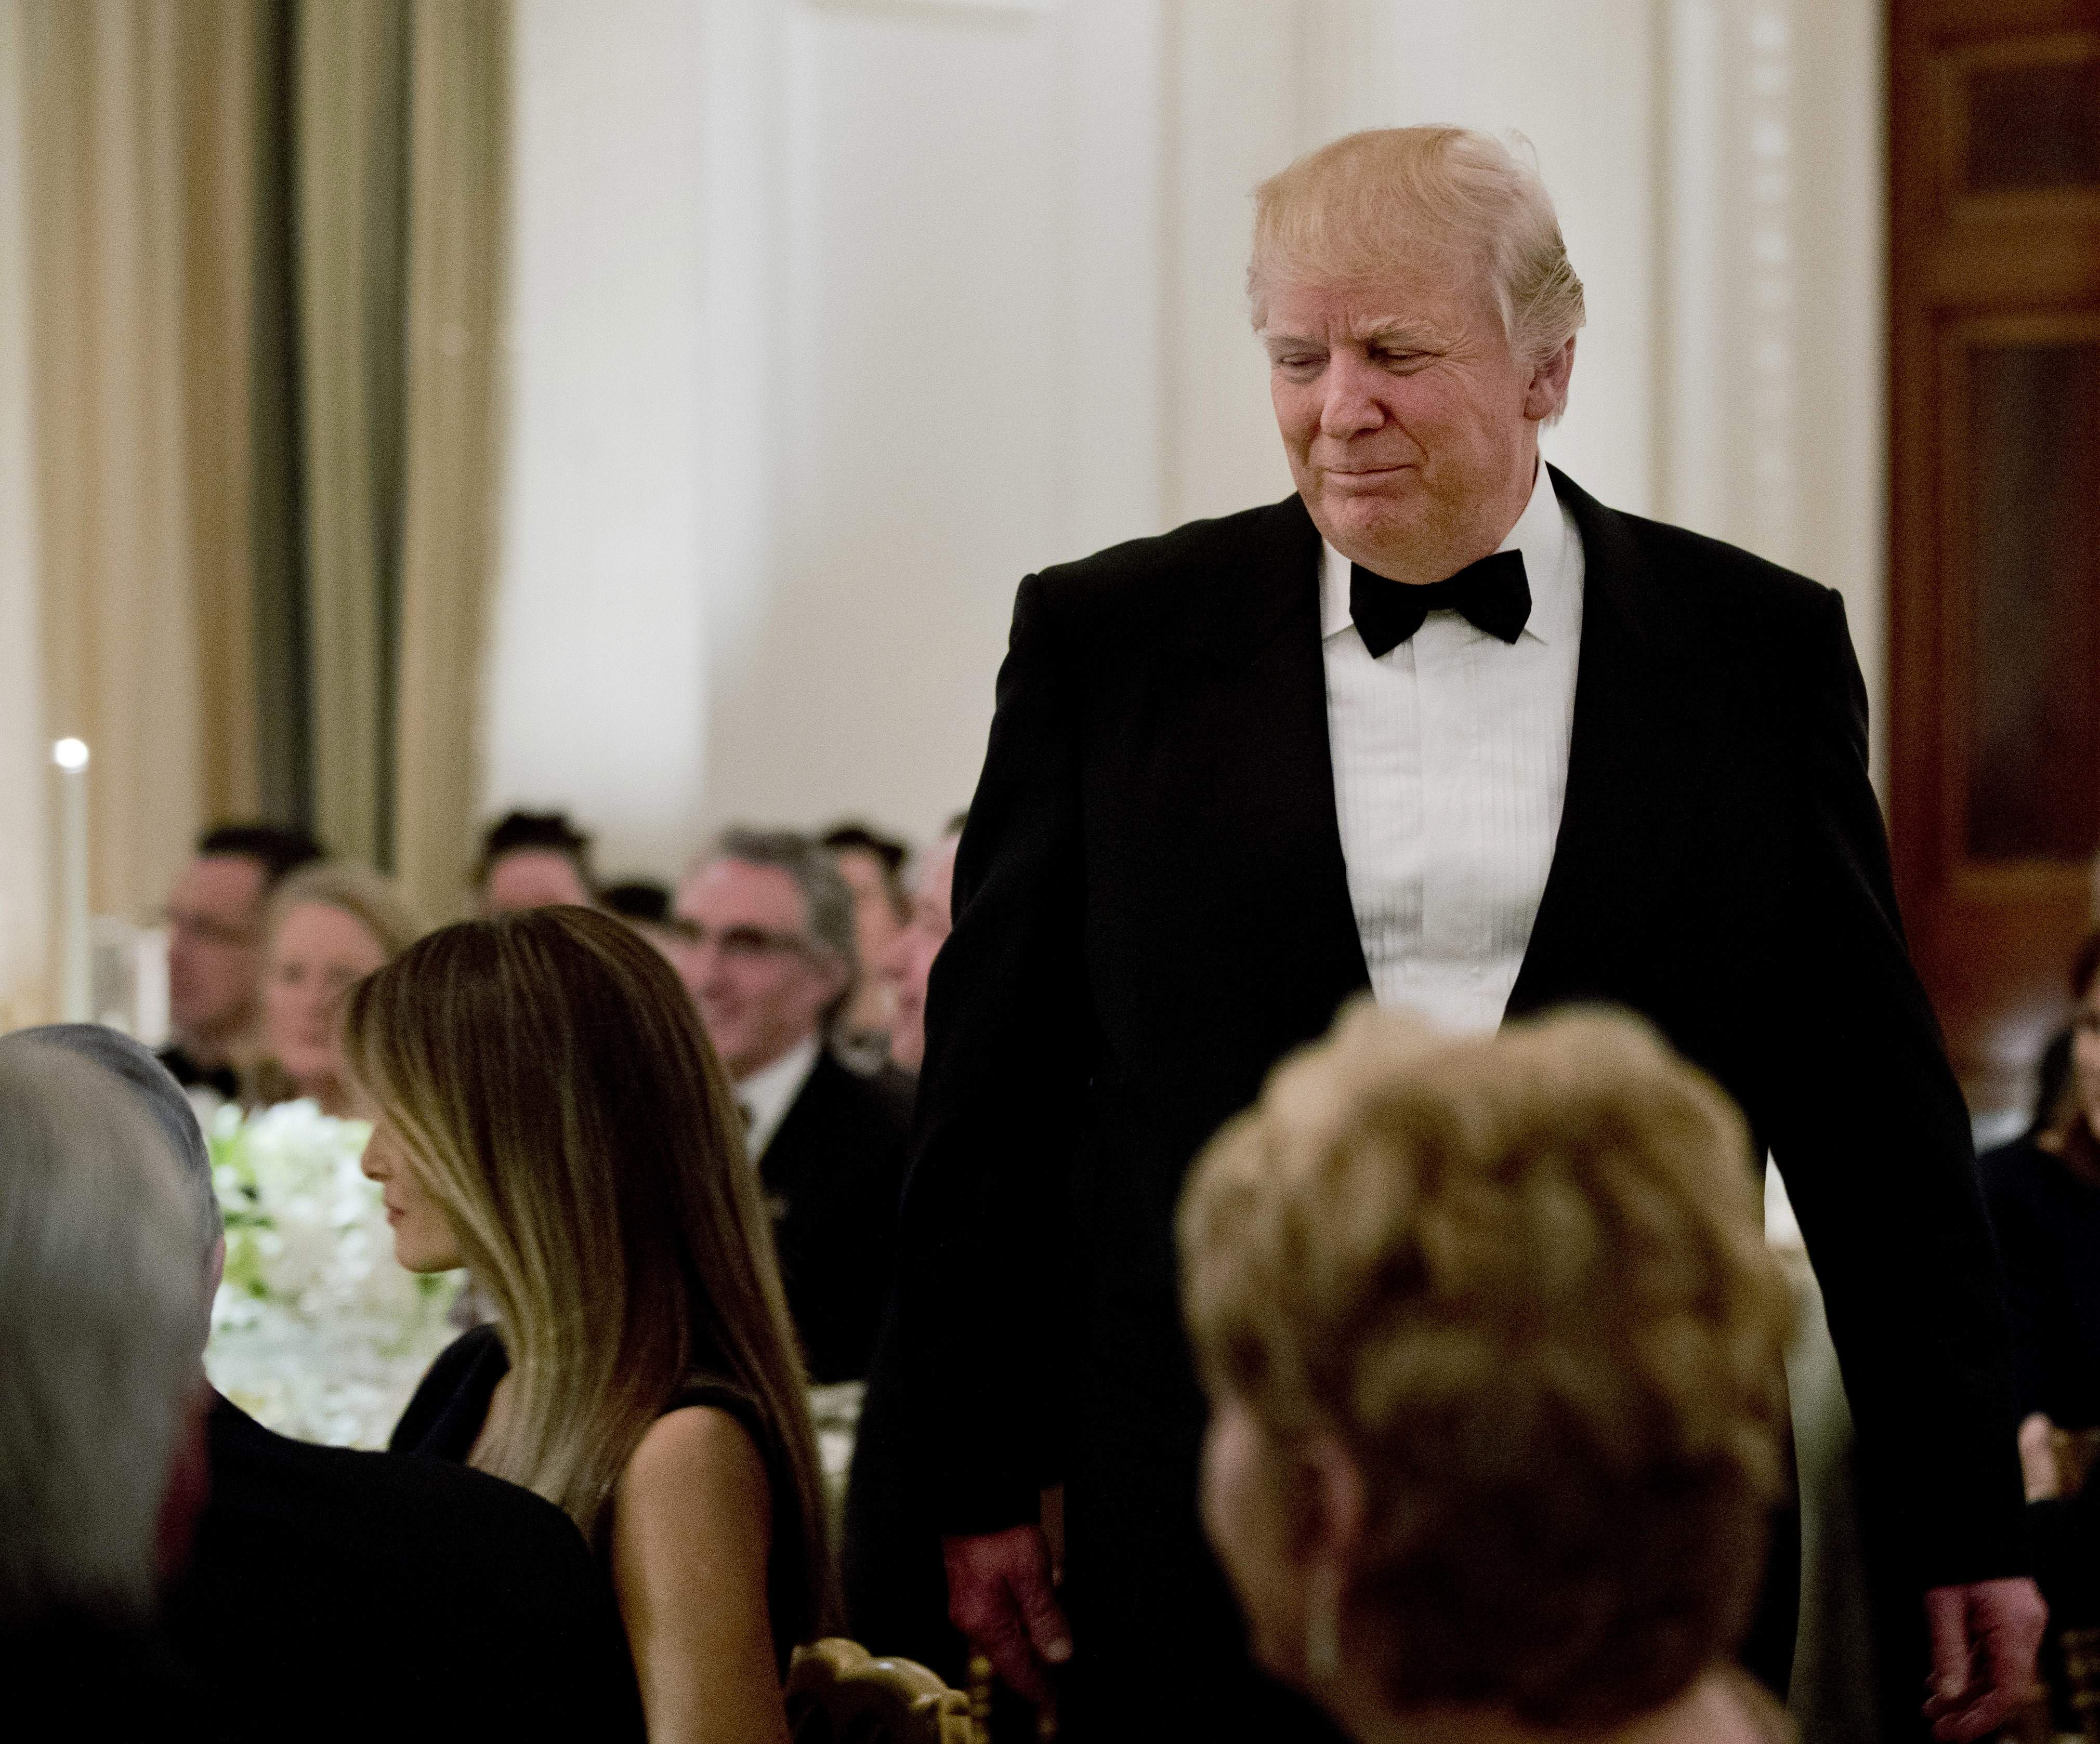 DAY 38 - In this Feb. 26, 2017, file photo, President Donald Trump walks towards first lady Melania Trump, left, after speaking at a dinner reception for the governors during the annual National Governors Association winter meeting at the State Dining Room of the White House in Washington. (AP Photo/Manuel Balce Ceneta, File)